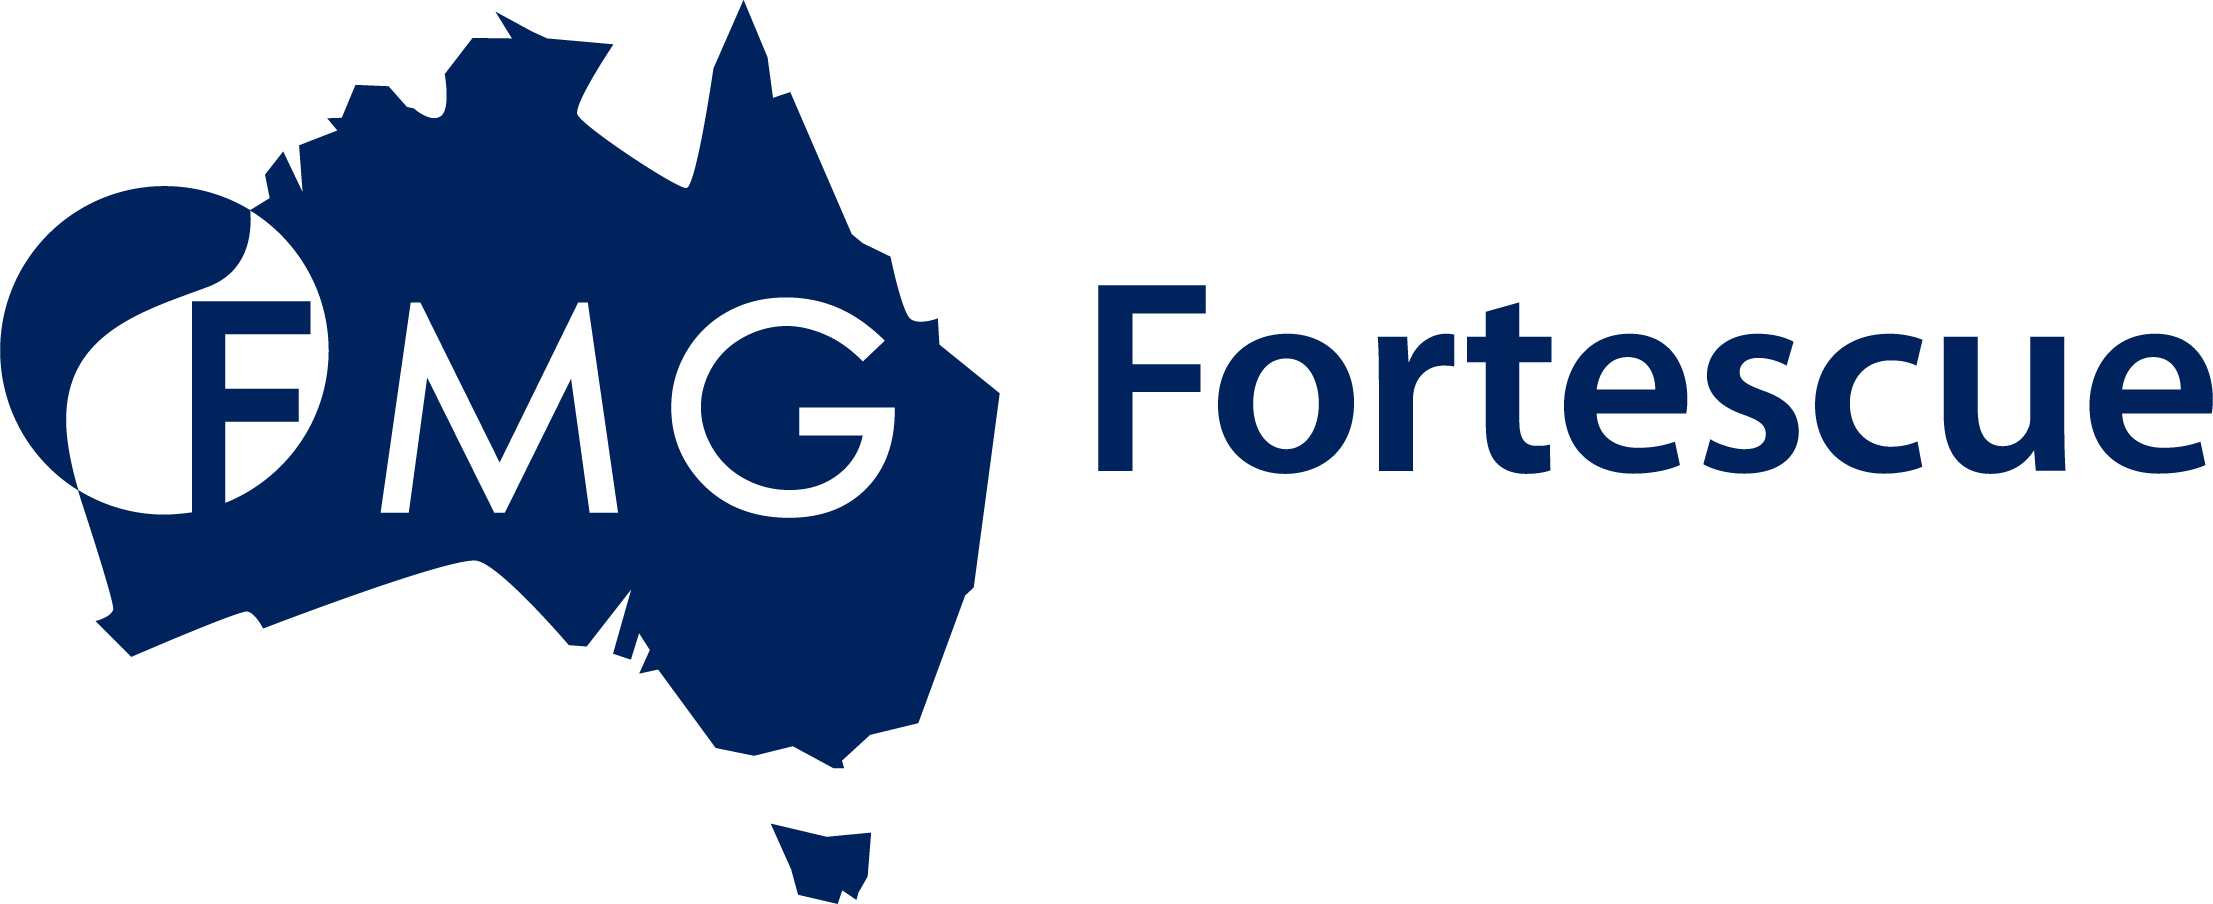 Fortescue Metals Group (ASX:FMG) Company Logo